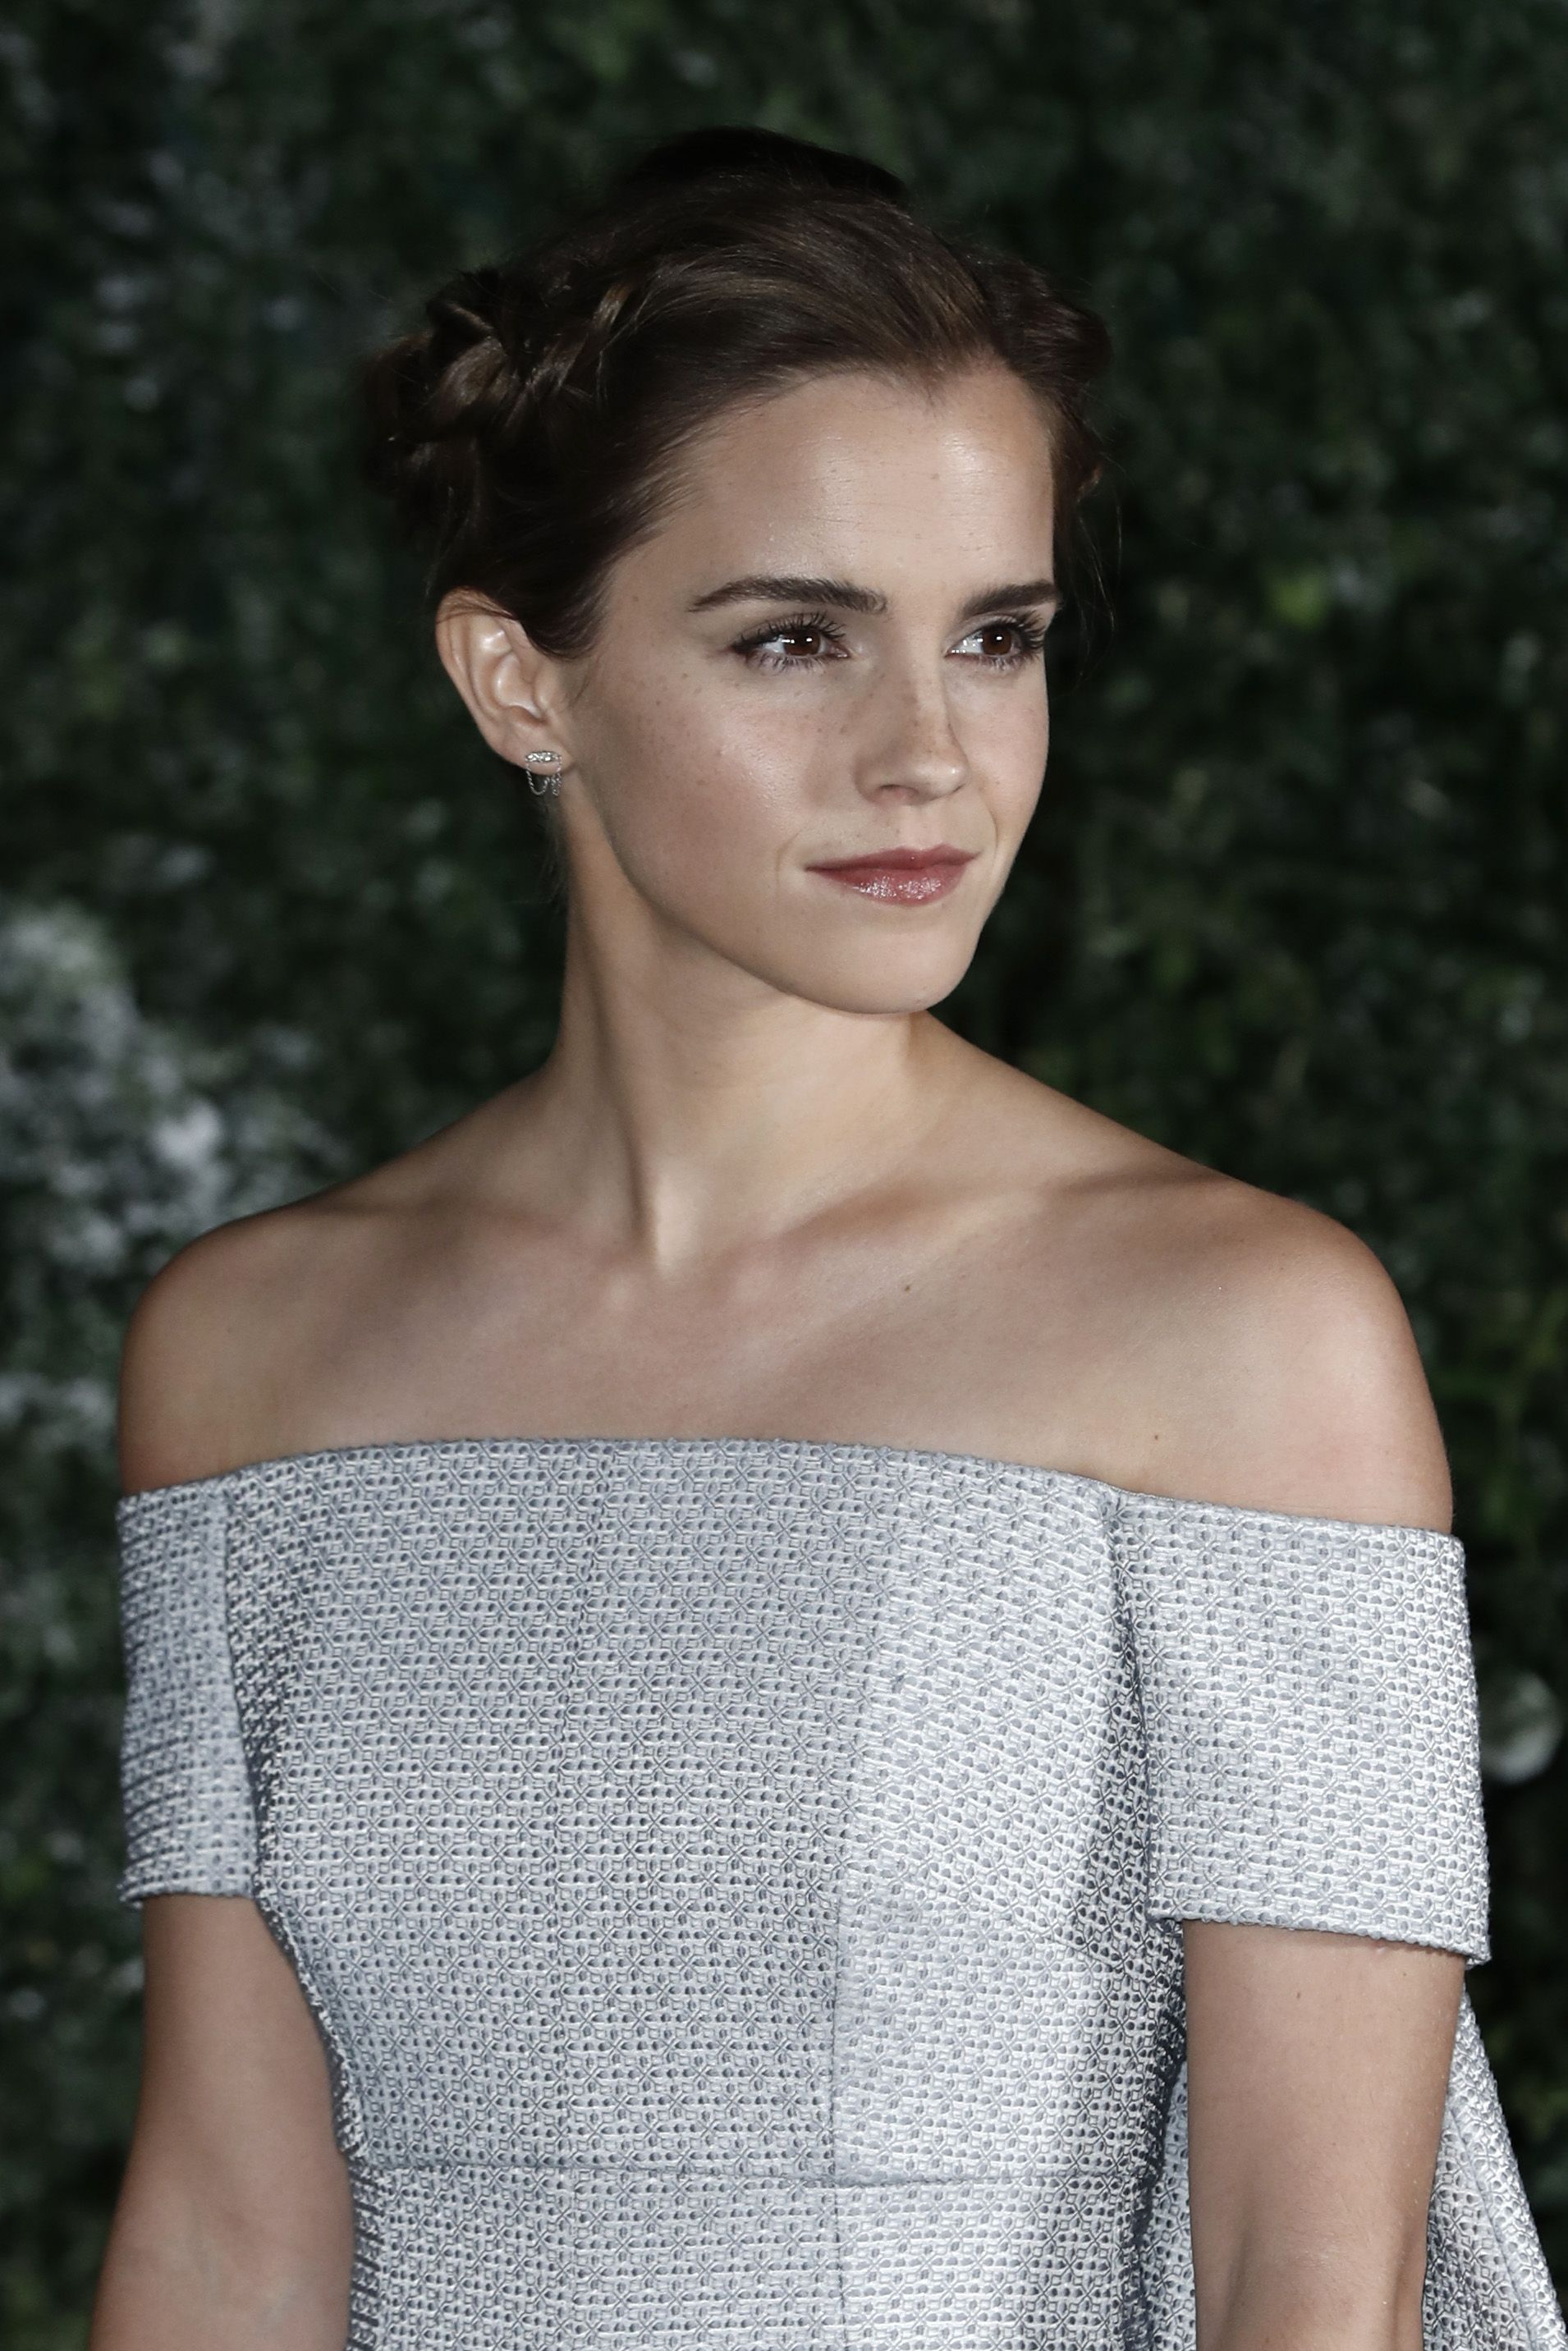 Emma Watson Beauty Routine - Her Rose-Scented Hair To Sustainable